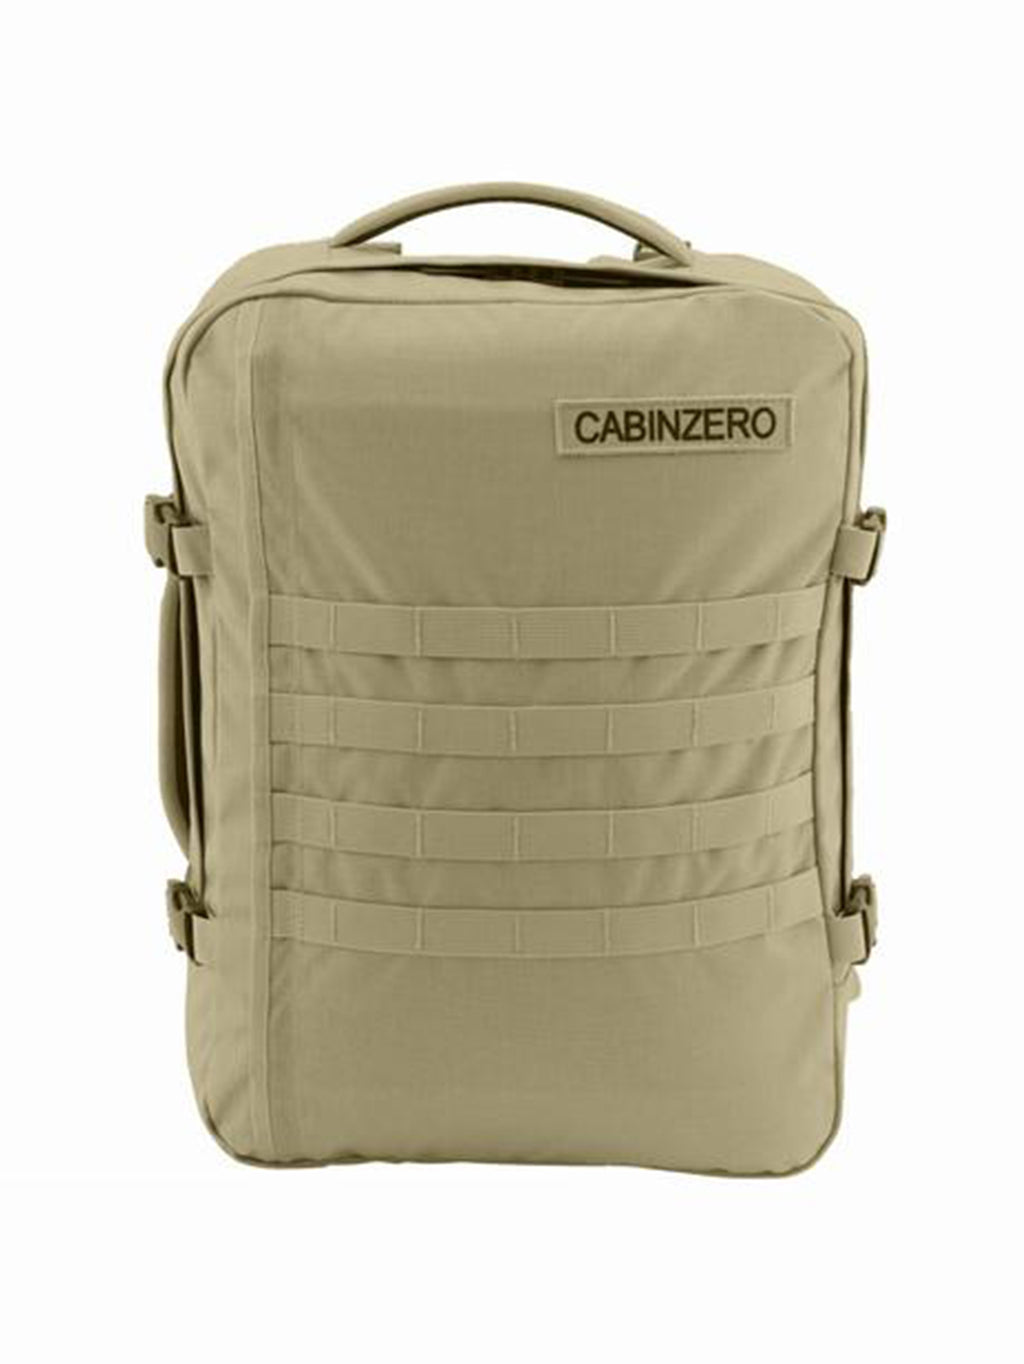 Cabinzero Military 36L in Light Khaki Color - This Is For Him